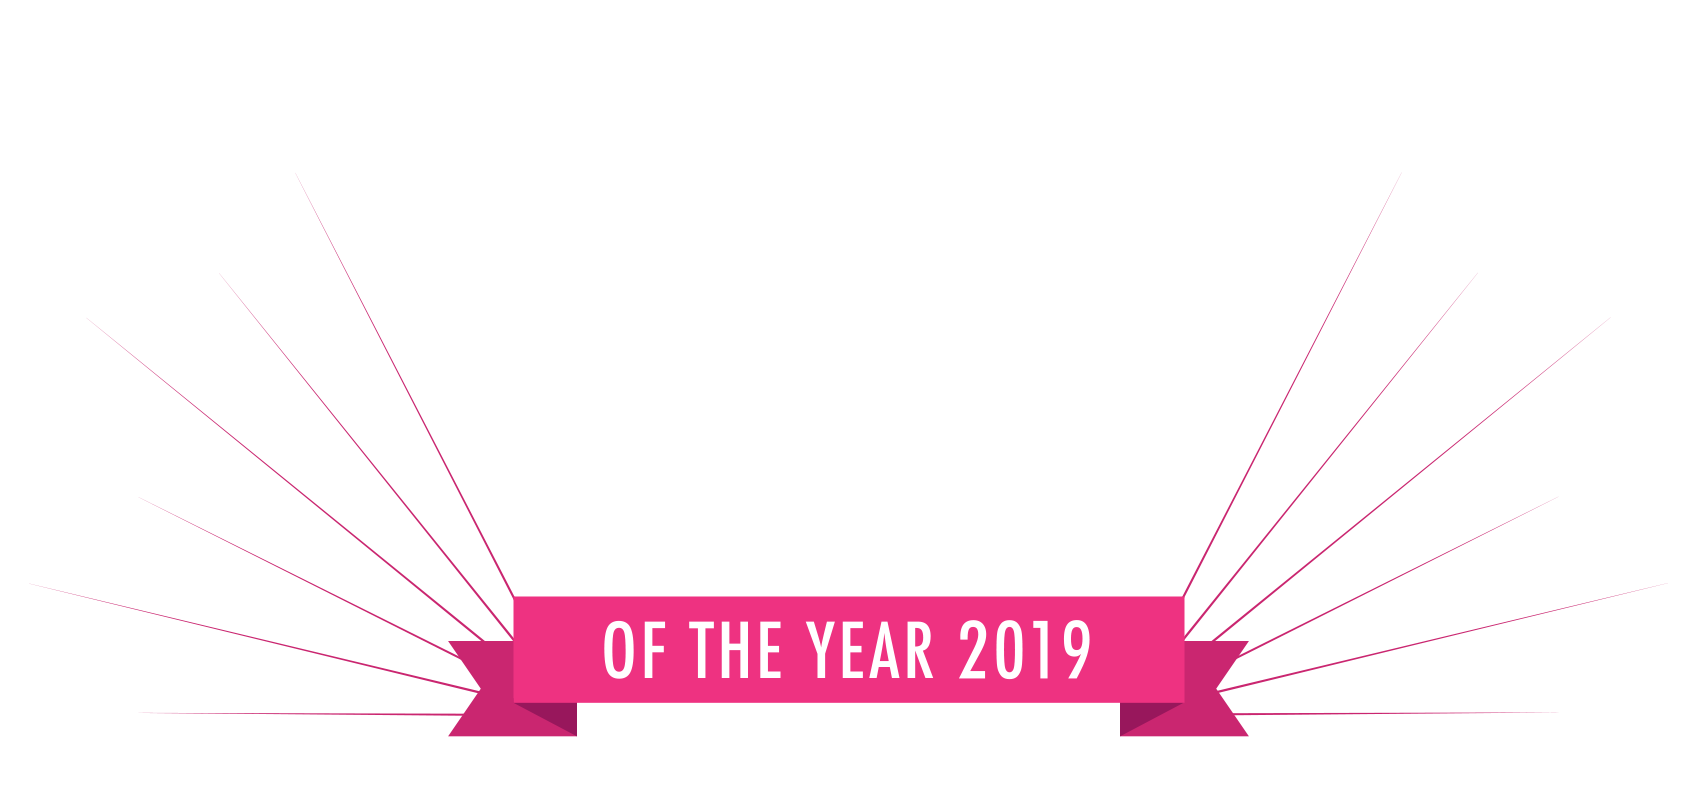 WELLNESS AWARD OF THE YEAR